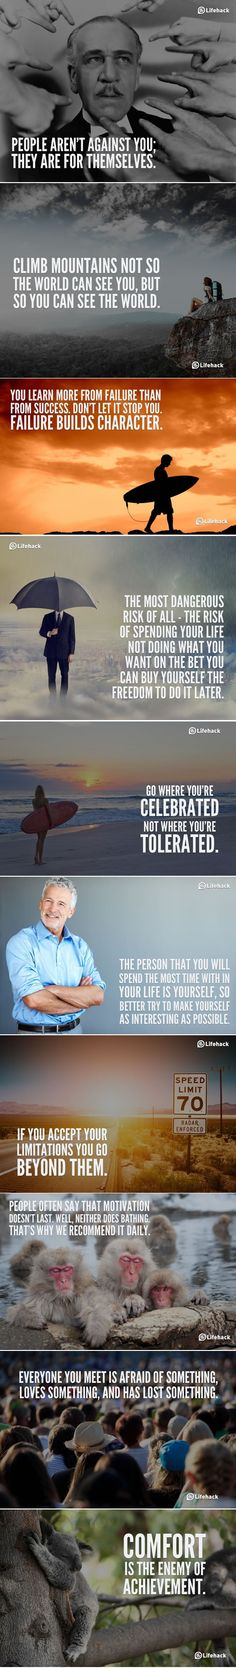 10 sentences that can change your perspective.--Best inspirational quotes 2013